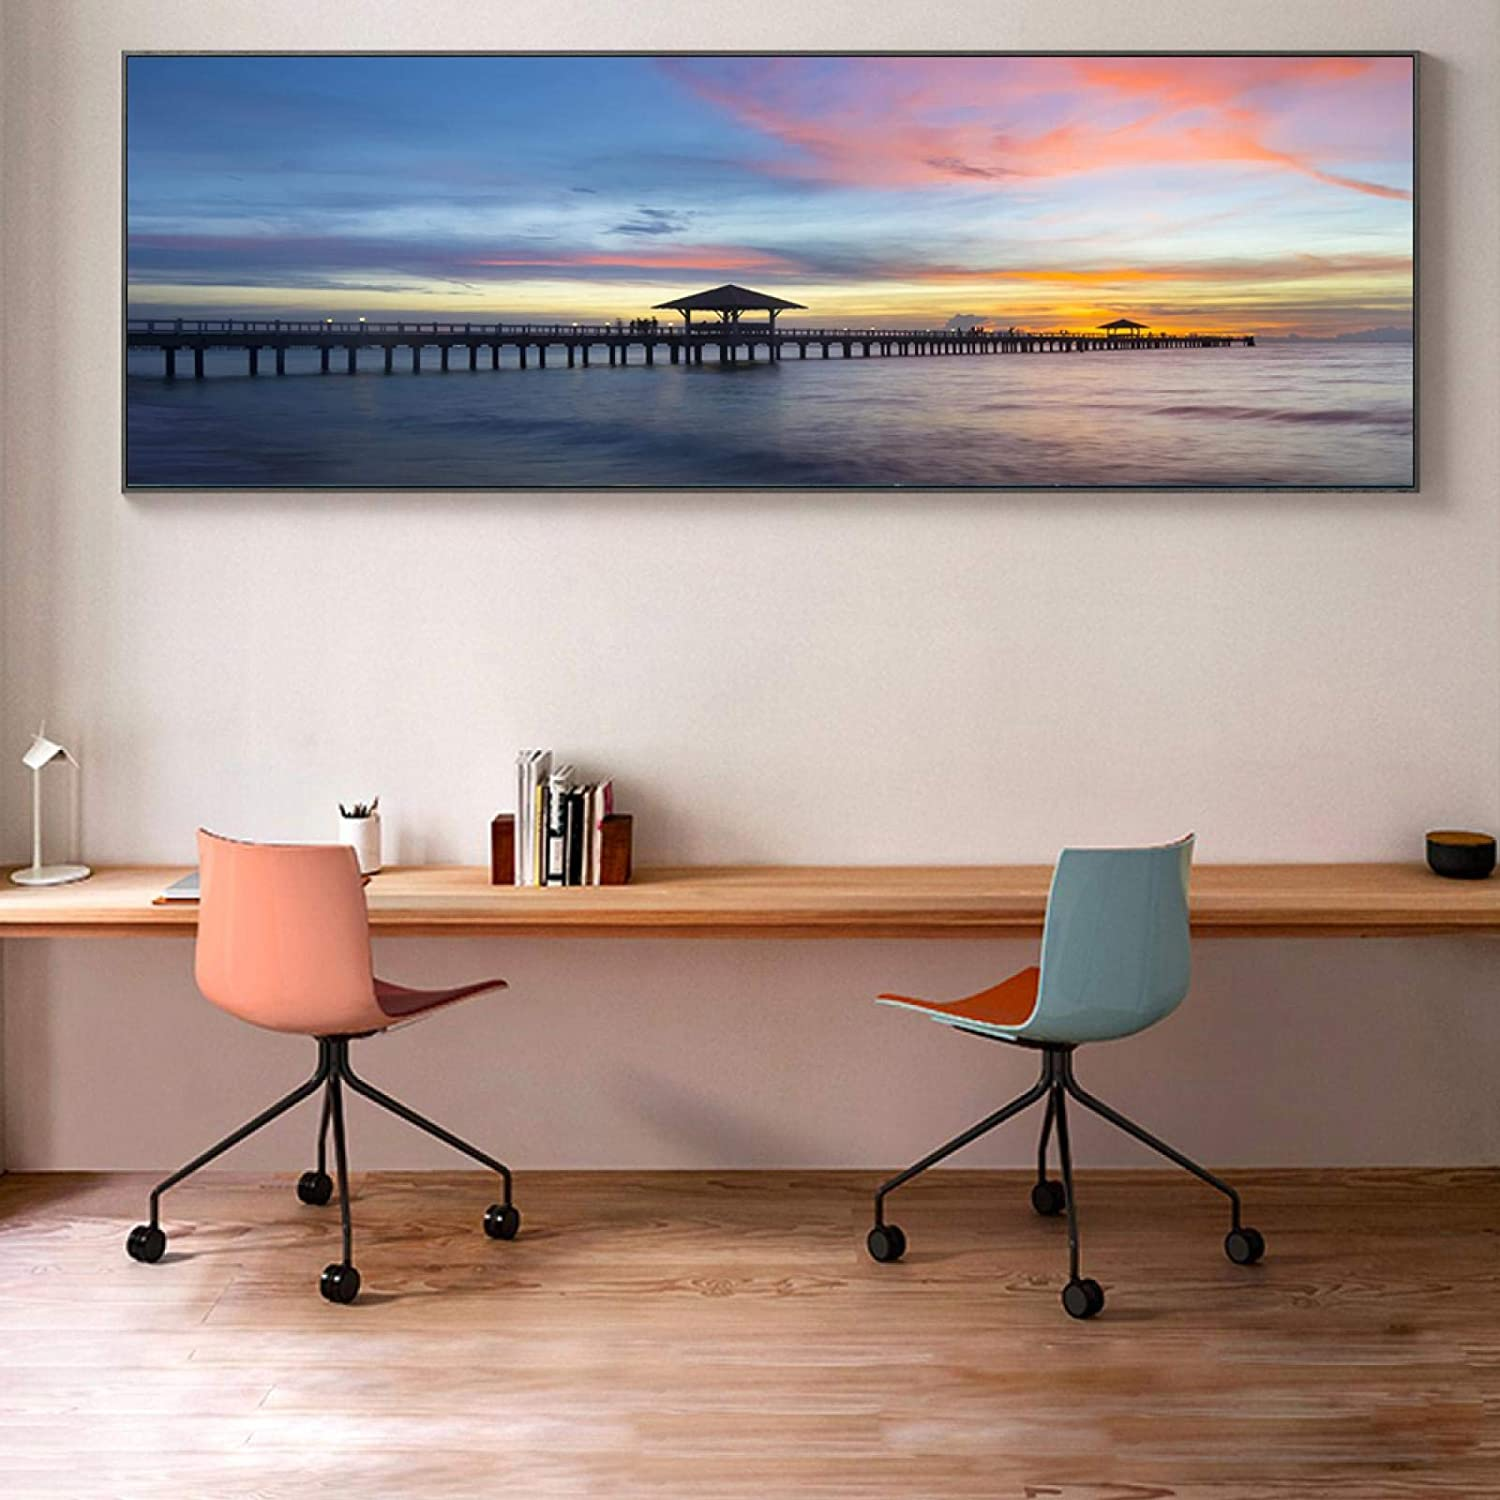 Classic Sea Sunset Bridge Landscape Art Canvas Poster Paintings Tampa Mall security